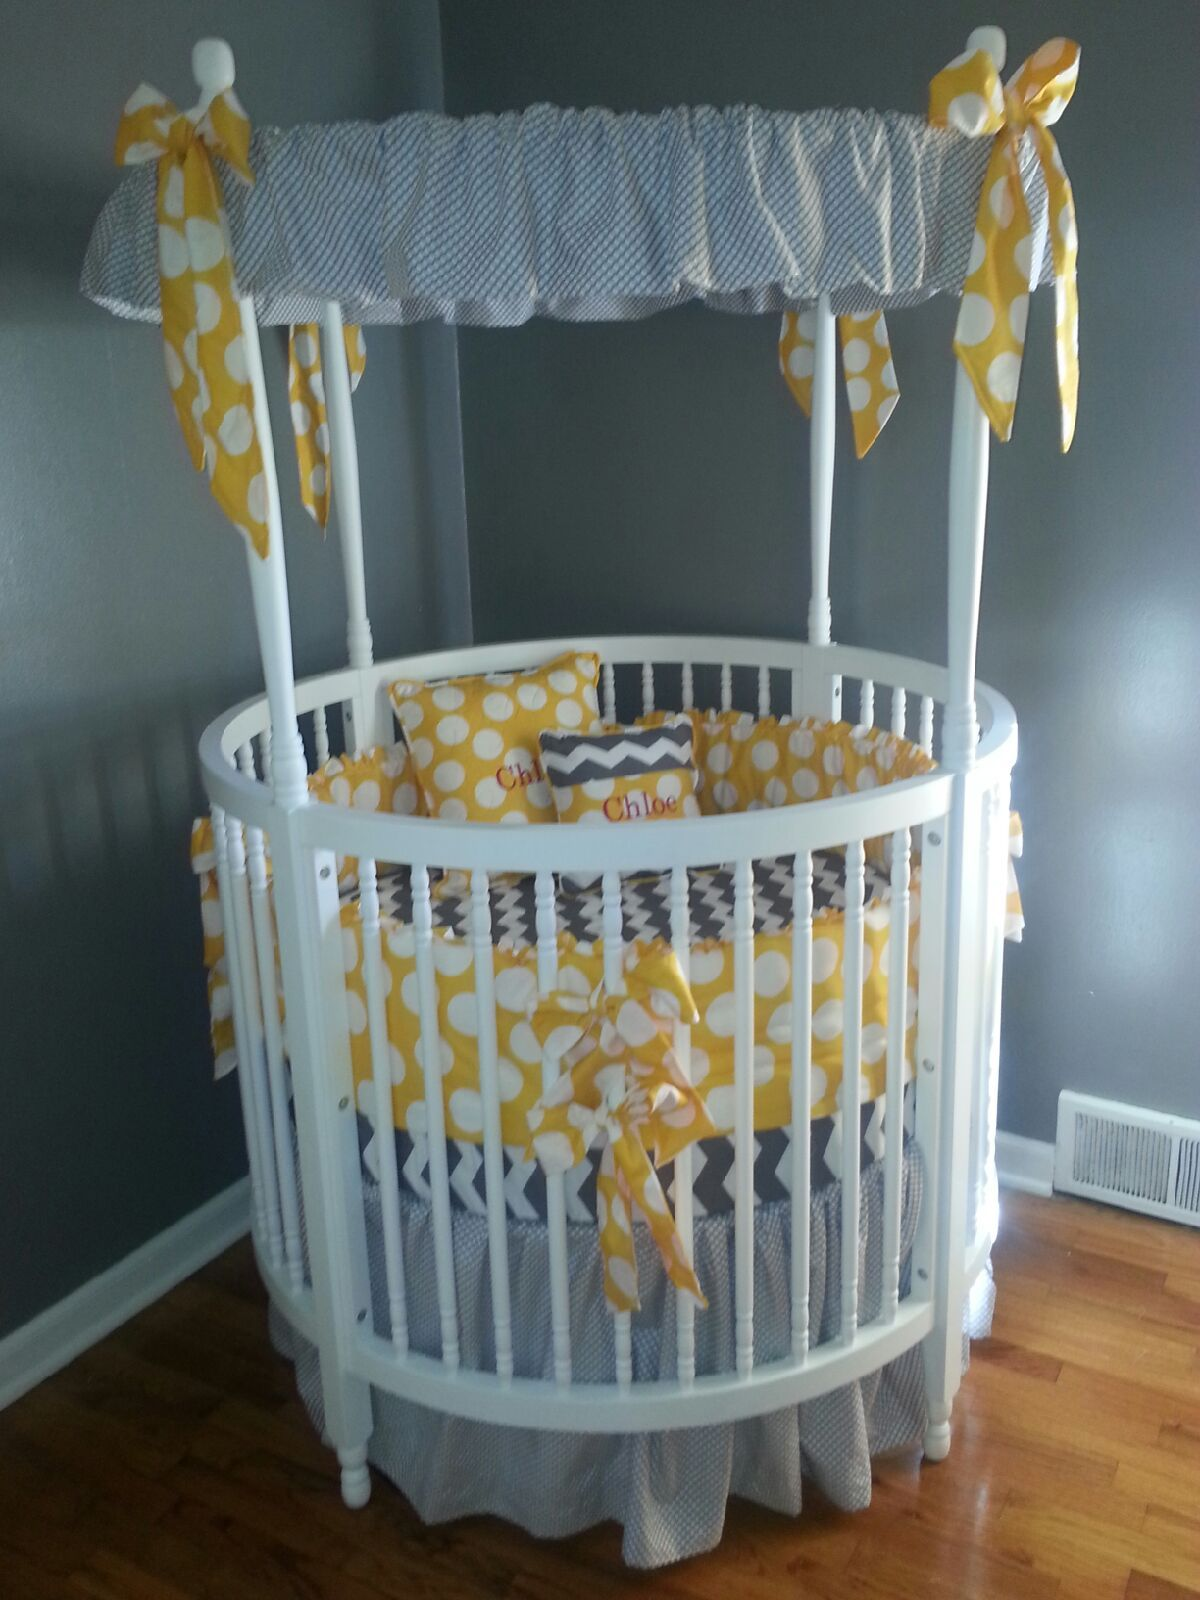 Modern White Round Baby Crib With Amazing Gray Themed Canopy Accessories Also Circle Pattern Yellow